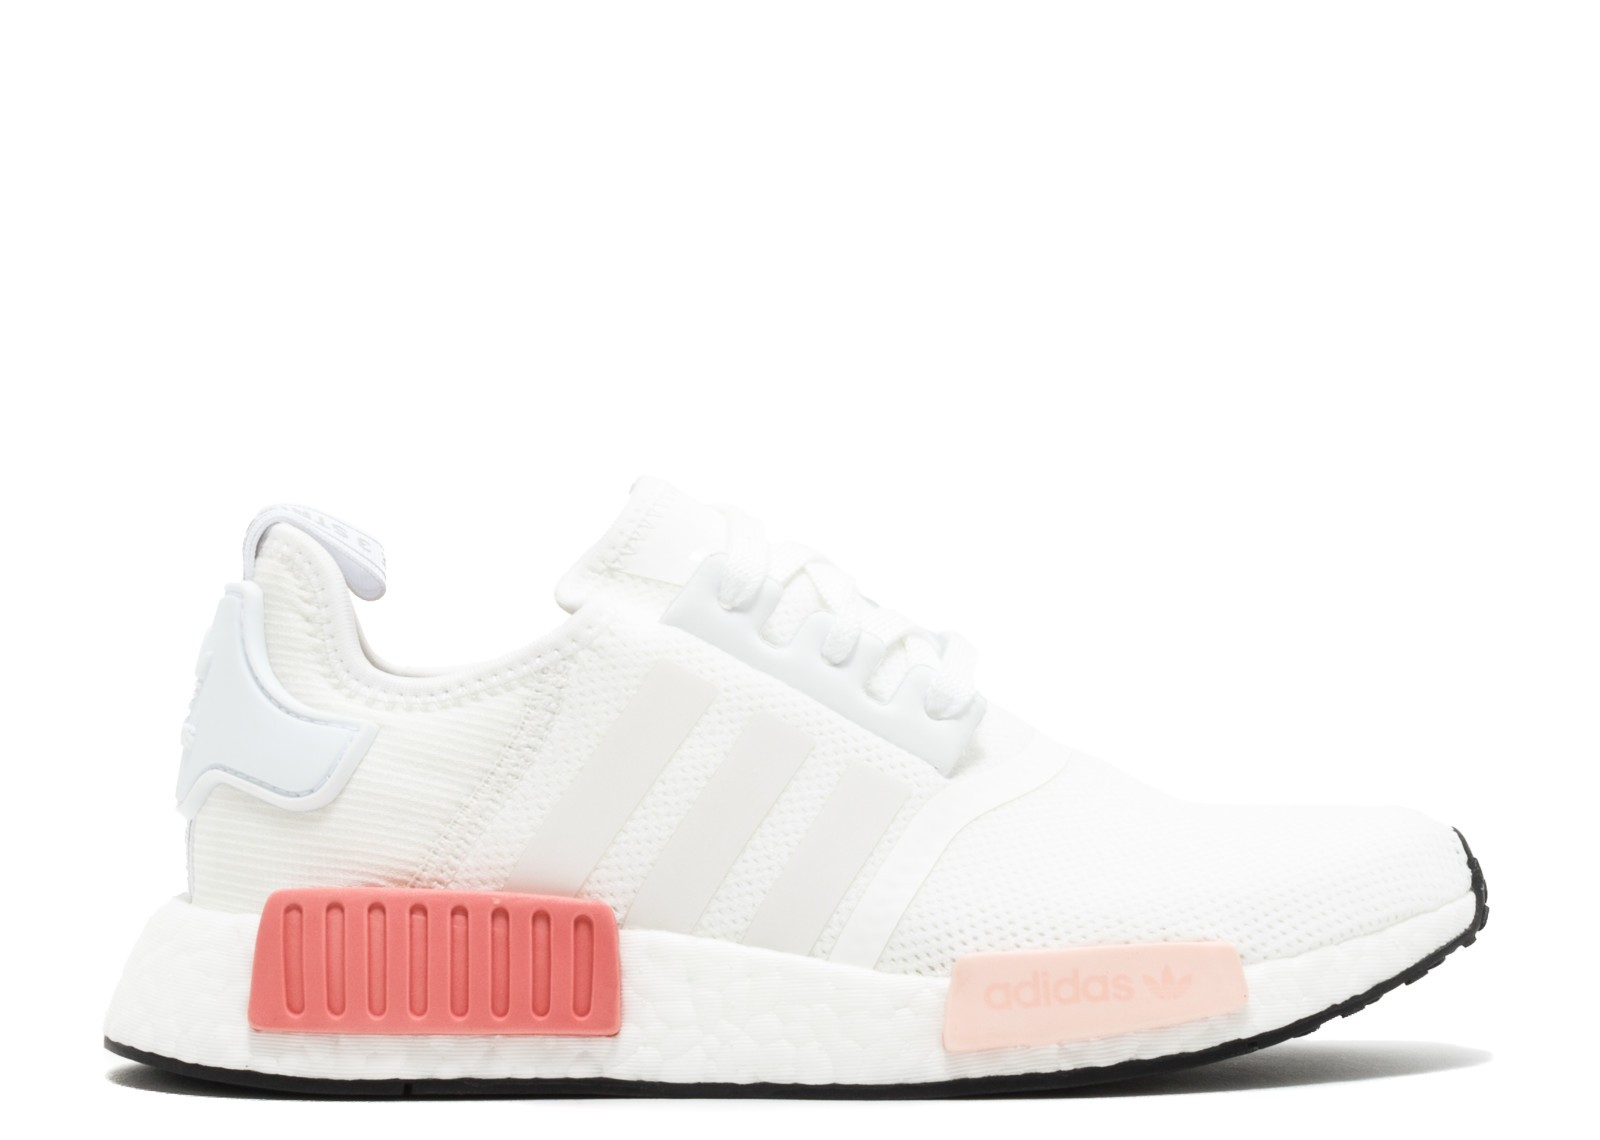 Adidas NMD R1 Women's White Pink BY9952